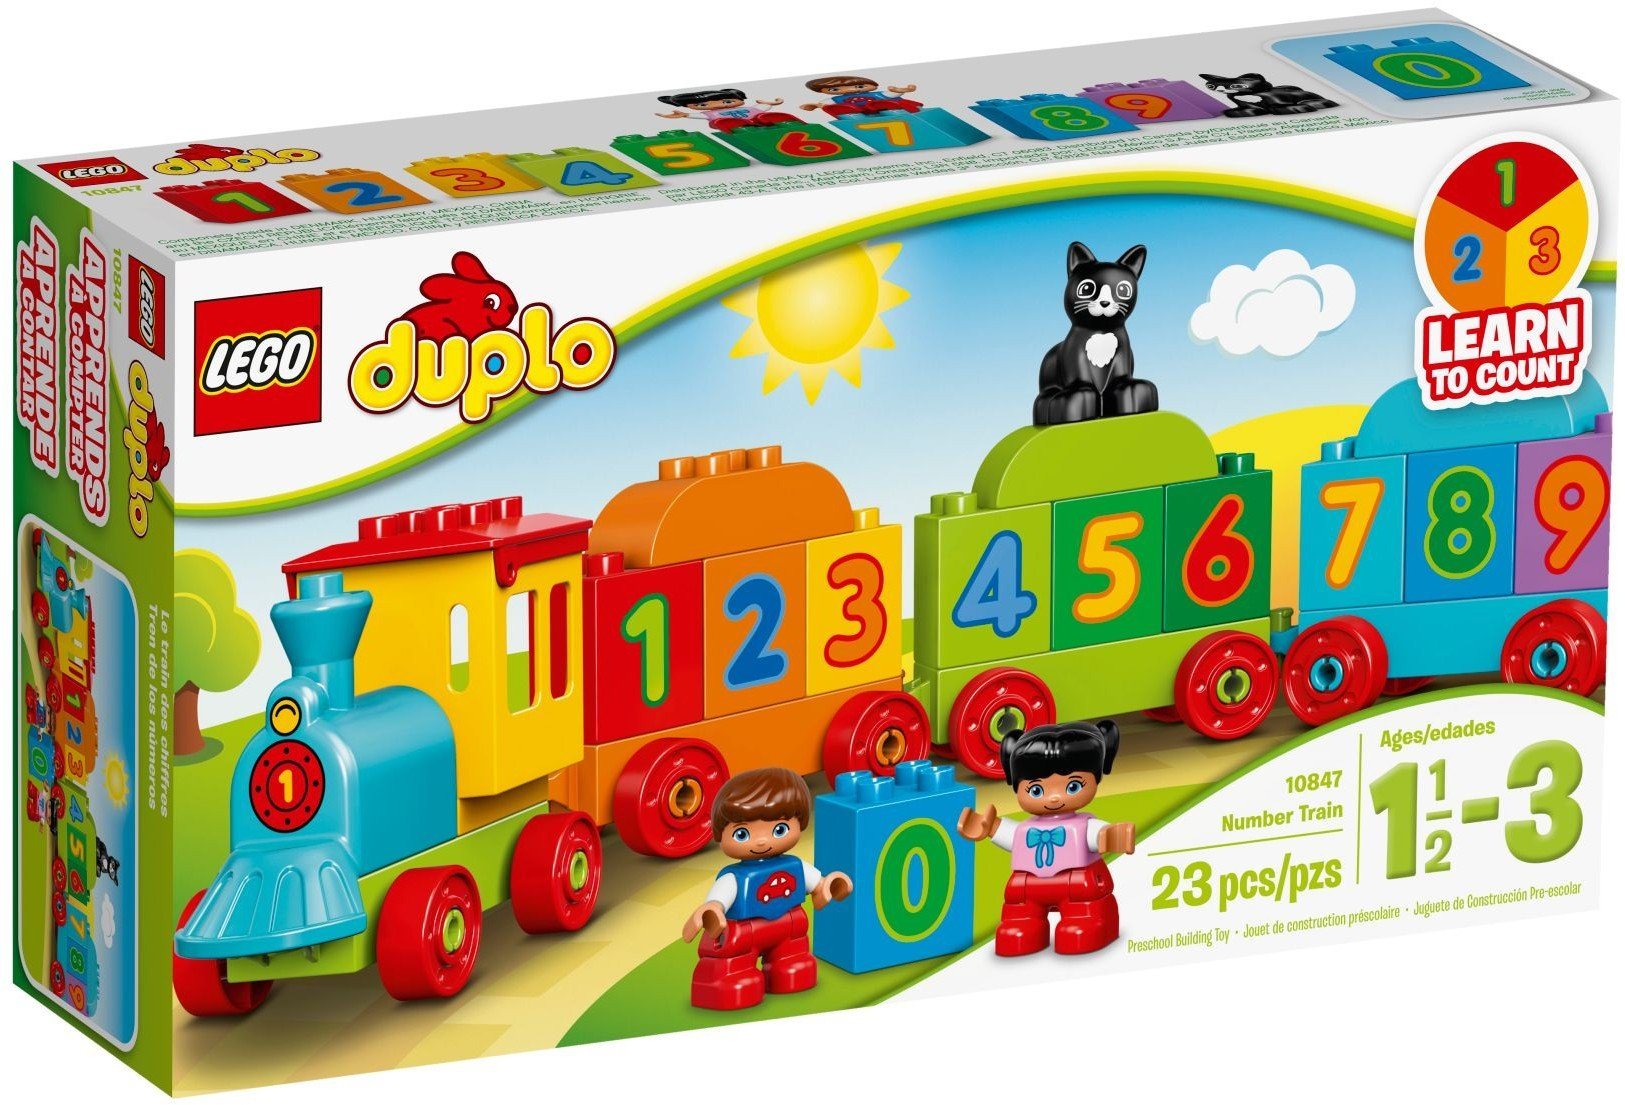 LEGO DUPLO - My First Number Train (10847)